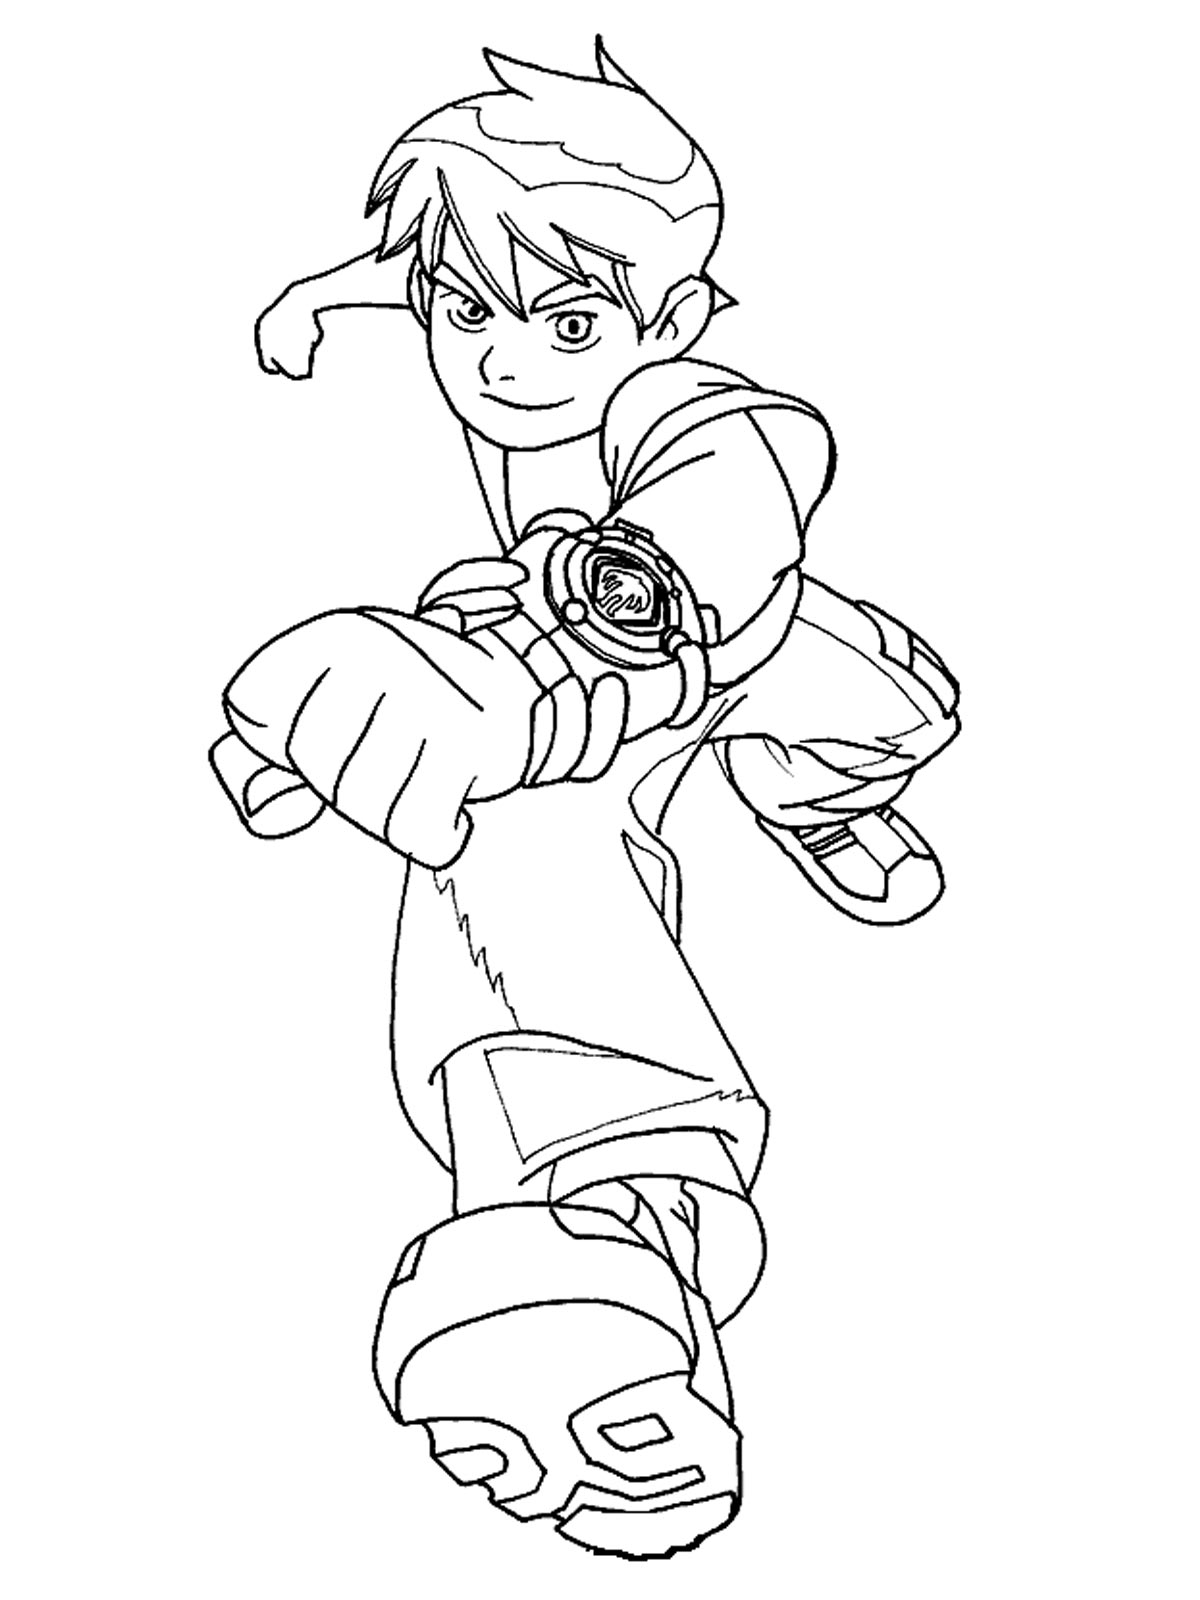 Ben 10 in action coloring page